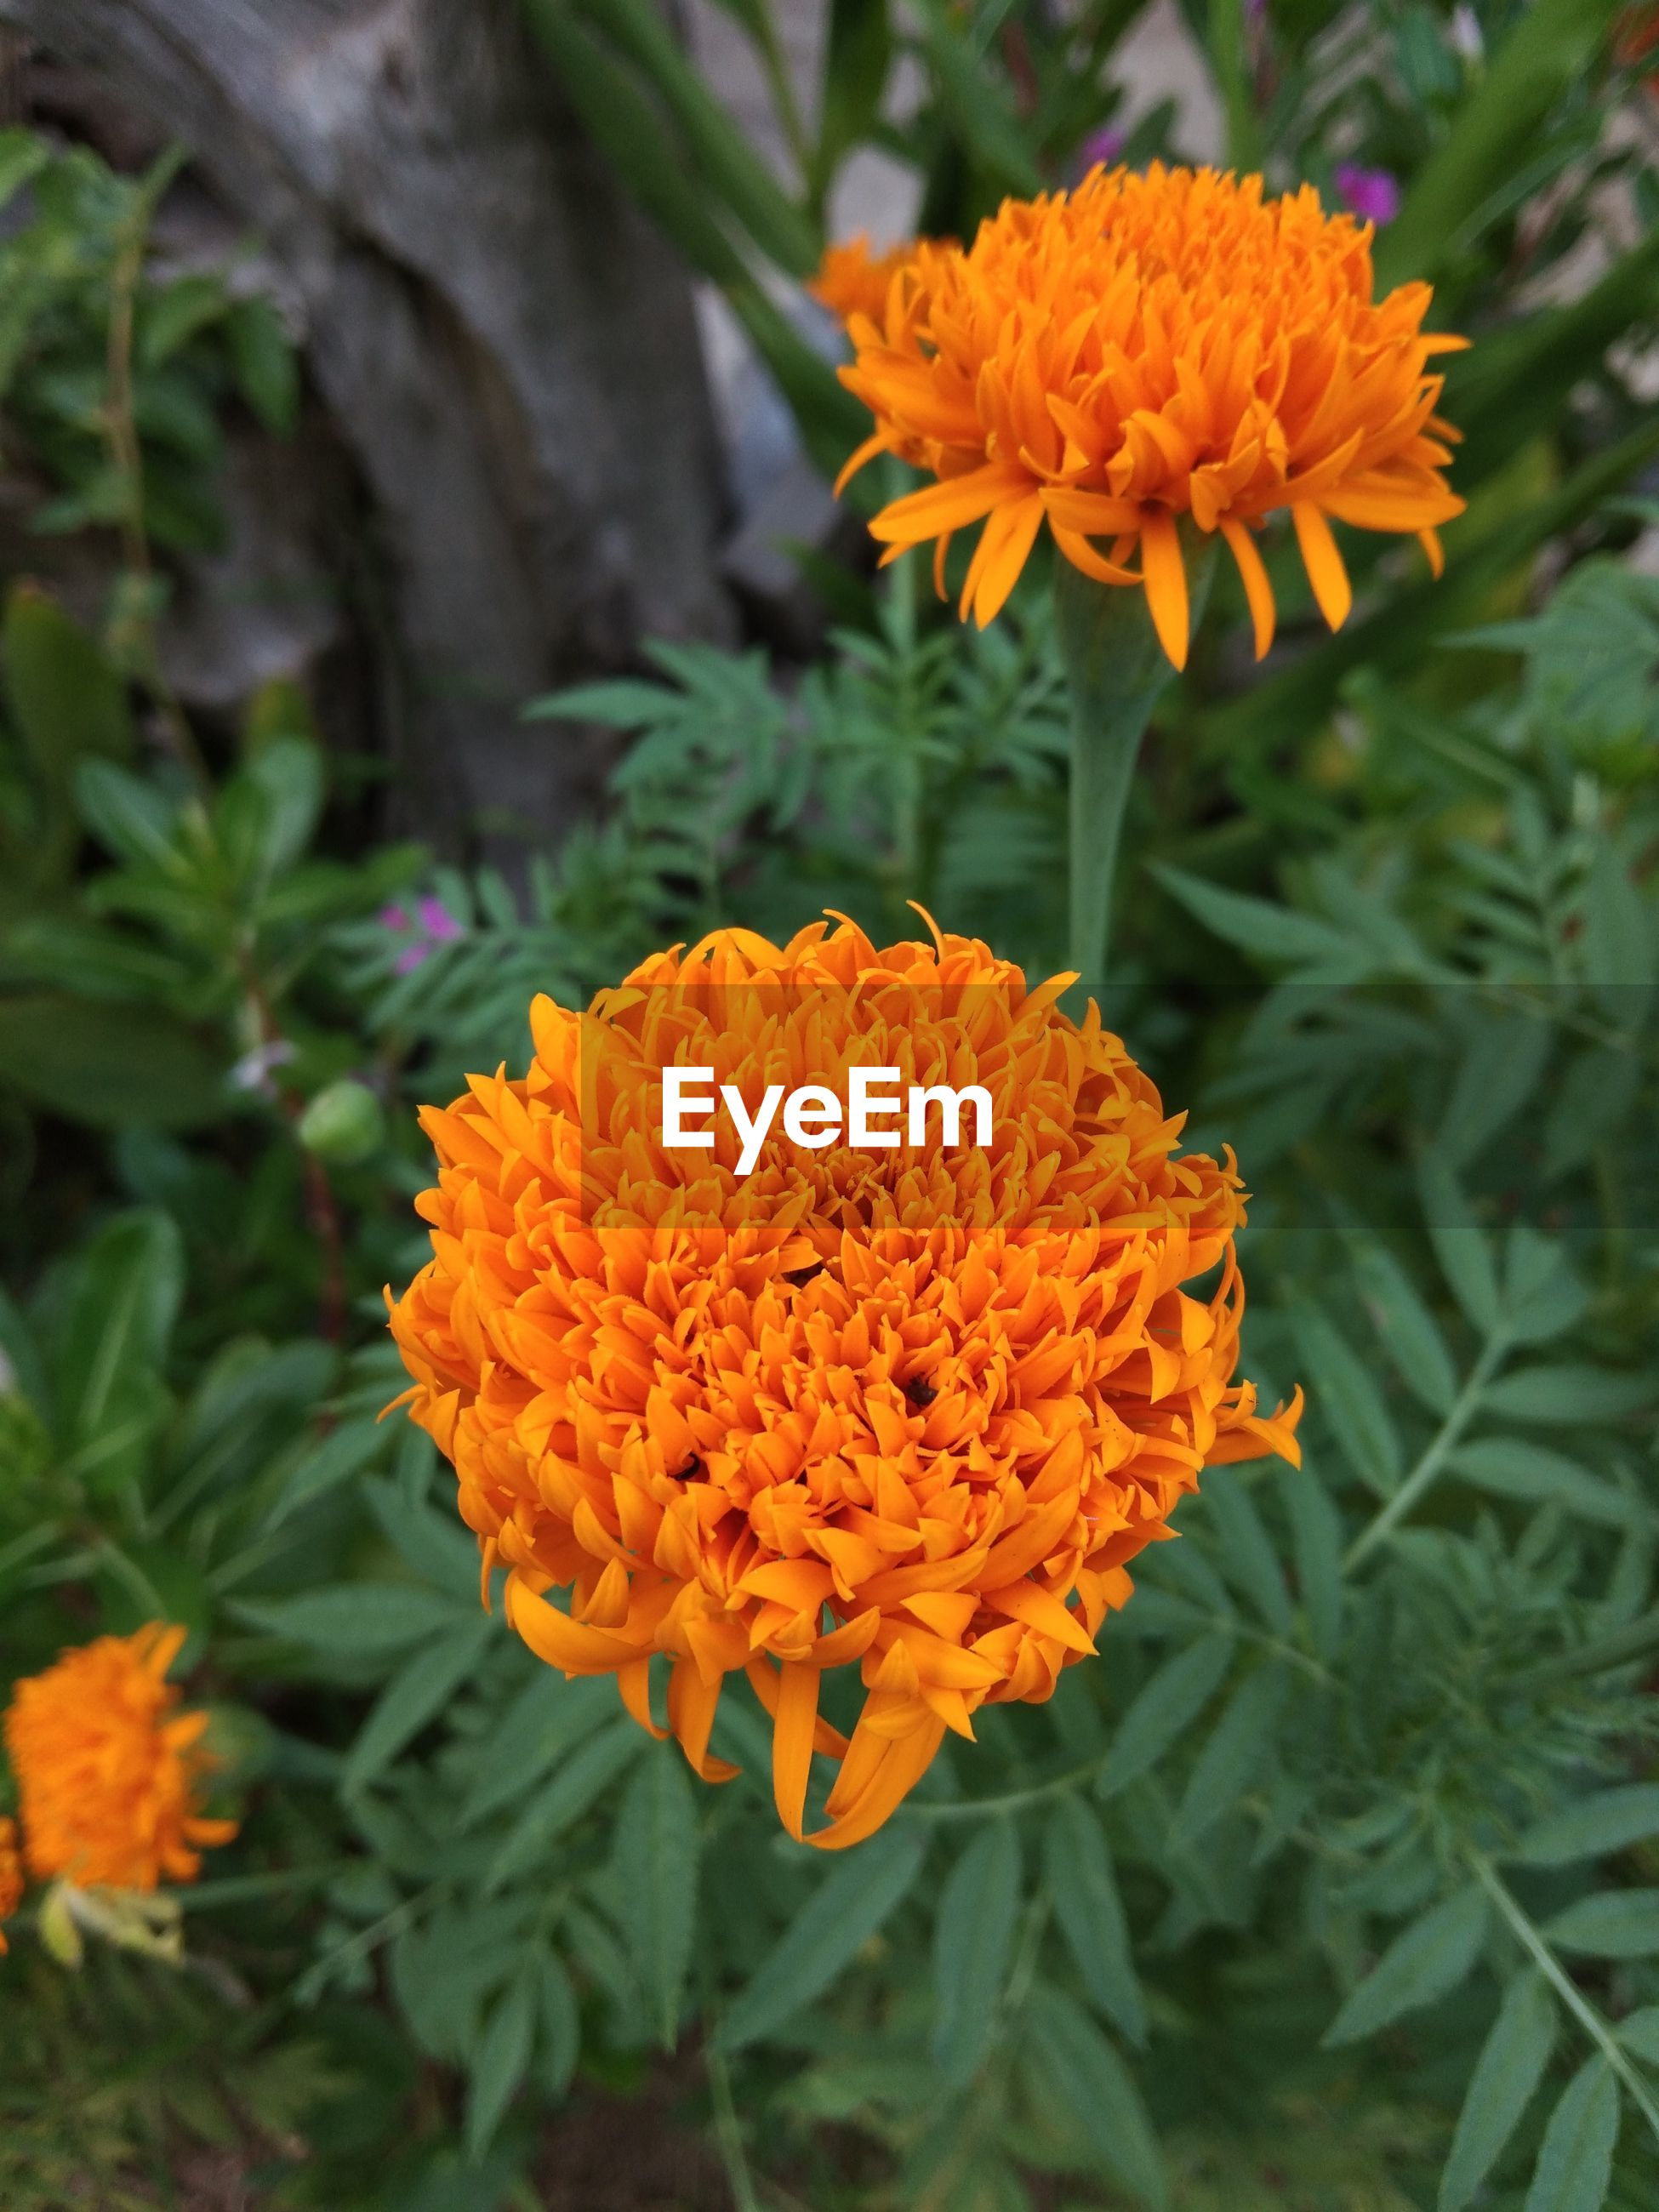 CLOSE-UP OF ORANGE MARIGOLD FLOWERS IN PARK